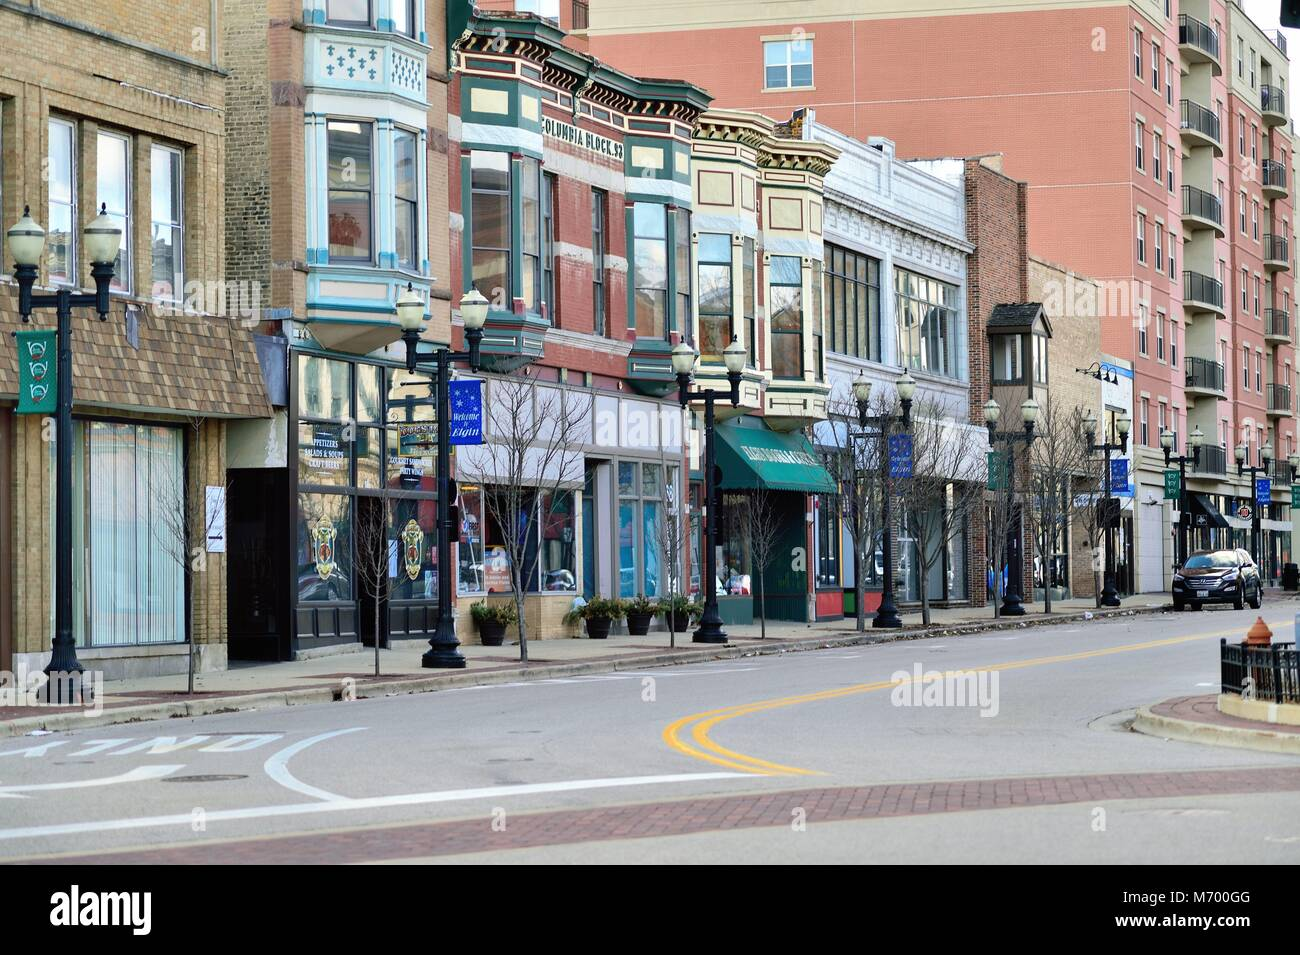 Elgin, Illinois, USA. Downtown street in the old river city of Elgin, Illinois. The architecture is sprinkled with - Stock Image